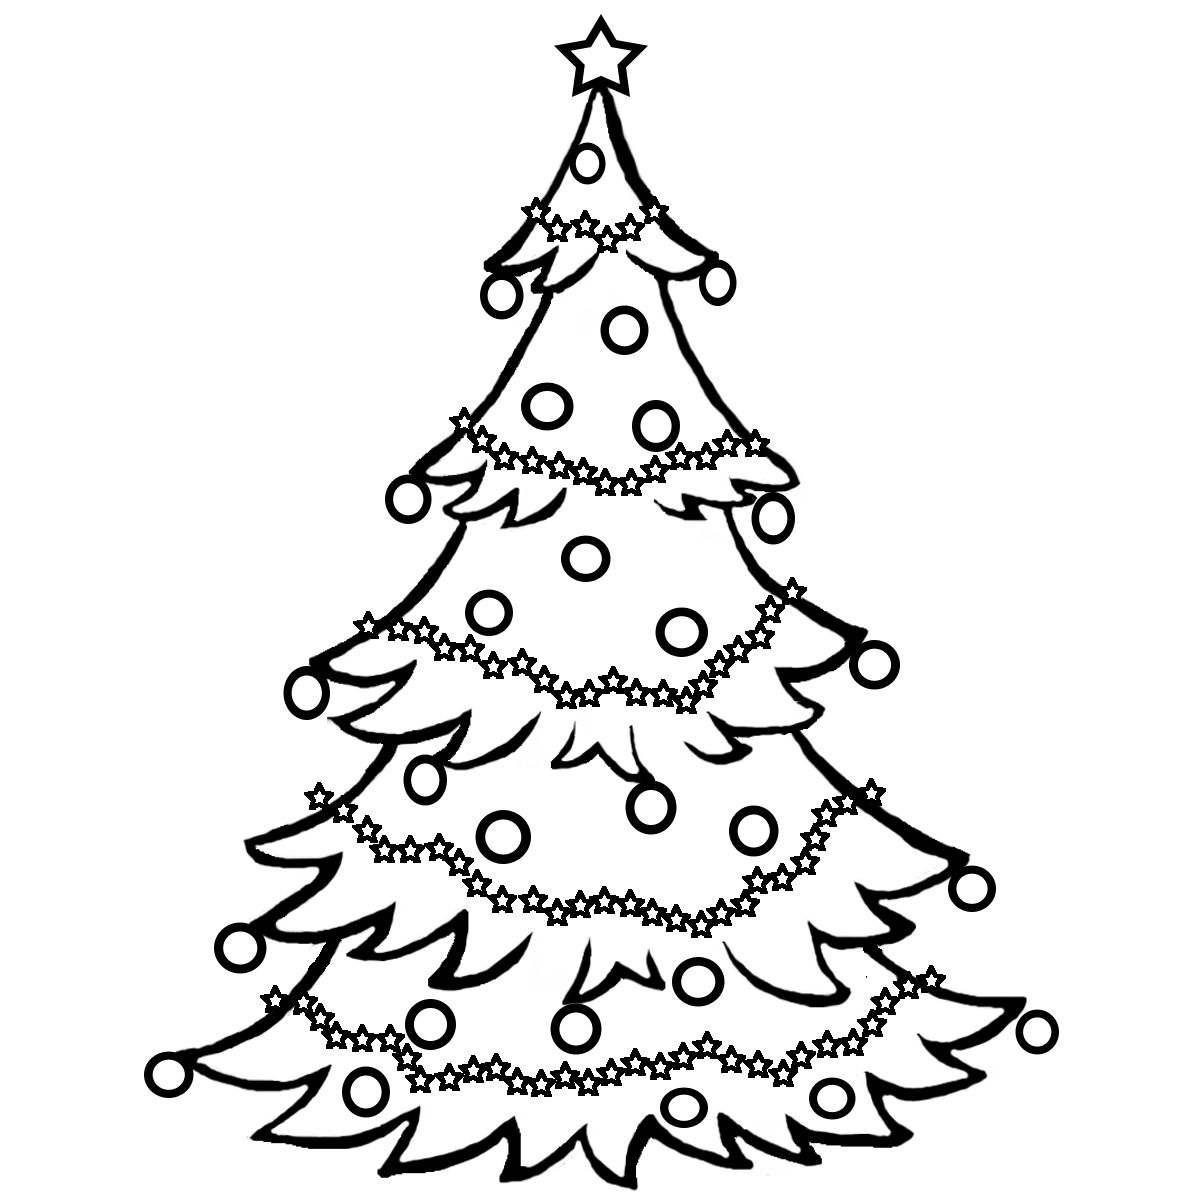 Pin By Amy Hilley On Preschool Projects Christmas Tree Drawing Christmas Tree Coloring Page Christmas Tree Clipart